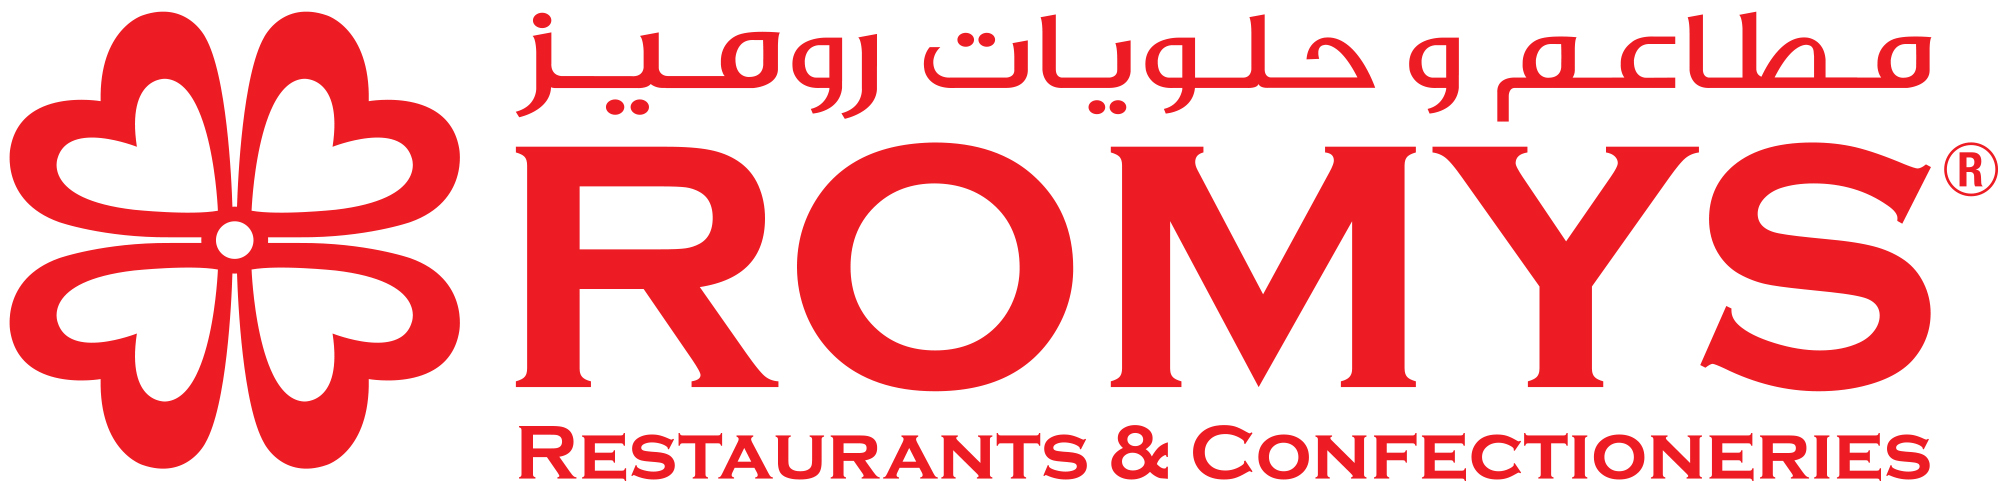 ROMYS RESTAURANTS & CONFE (TM) - LOGO